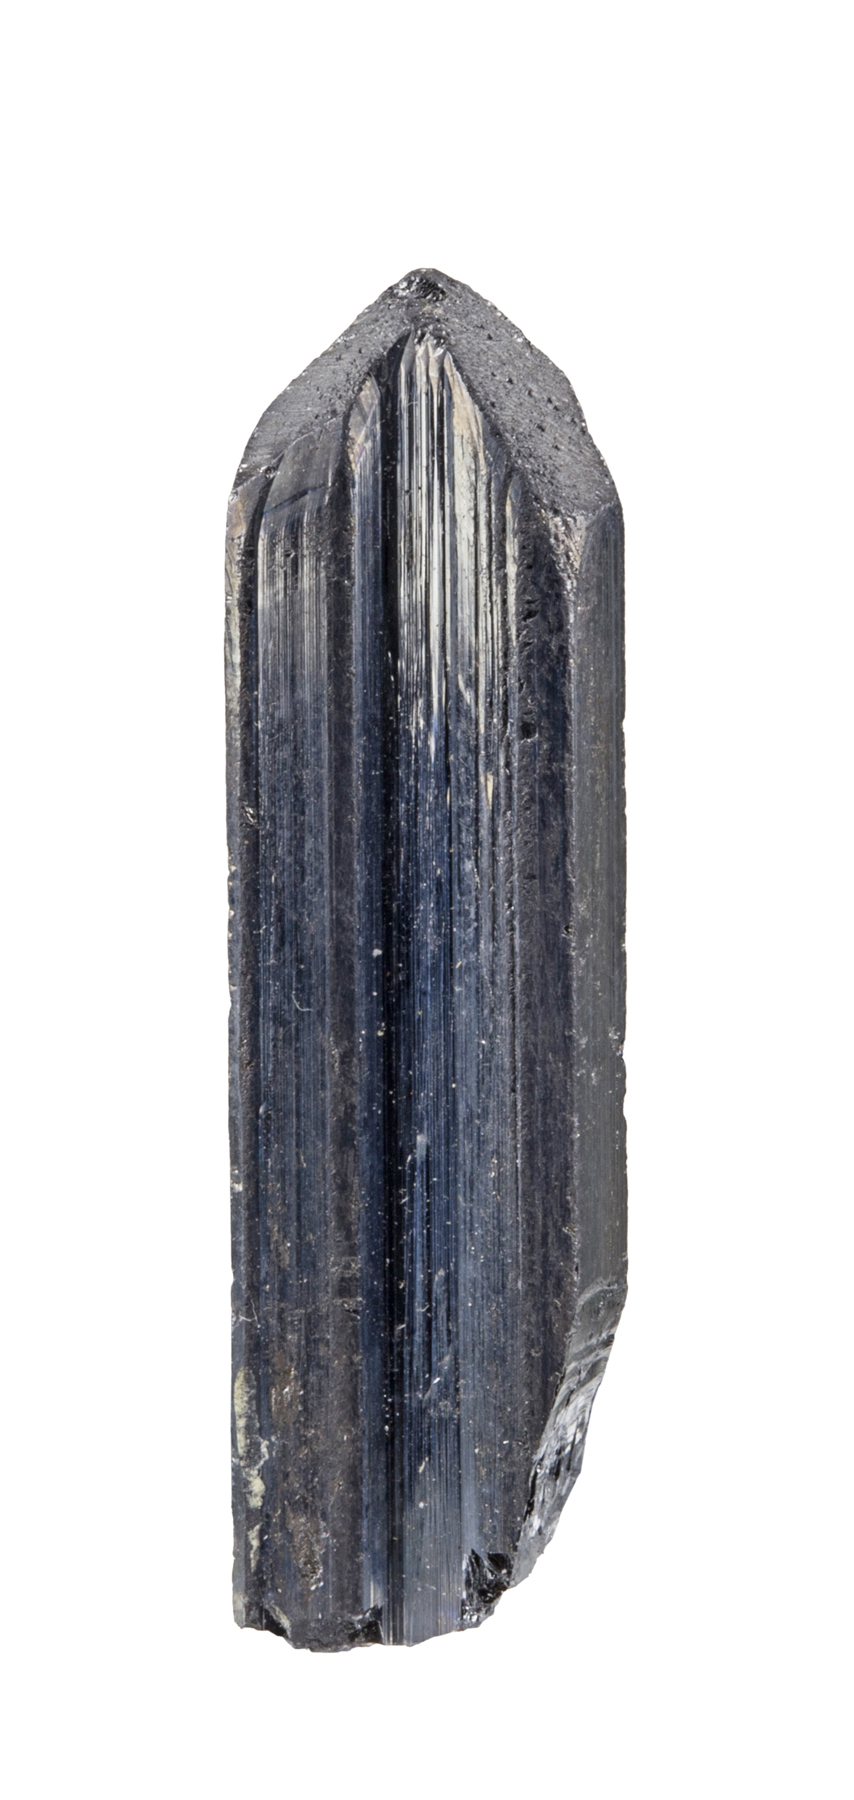 A classic old time terminated Stibnite crystal renowned Ichinokawa